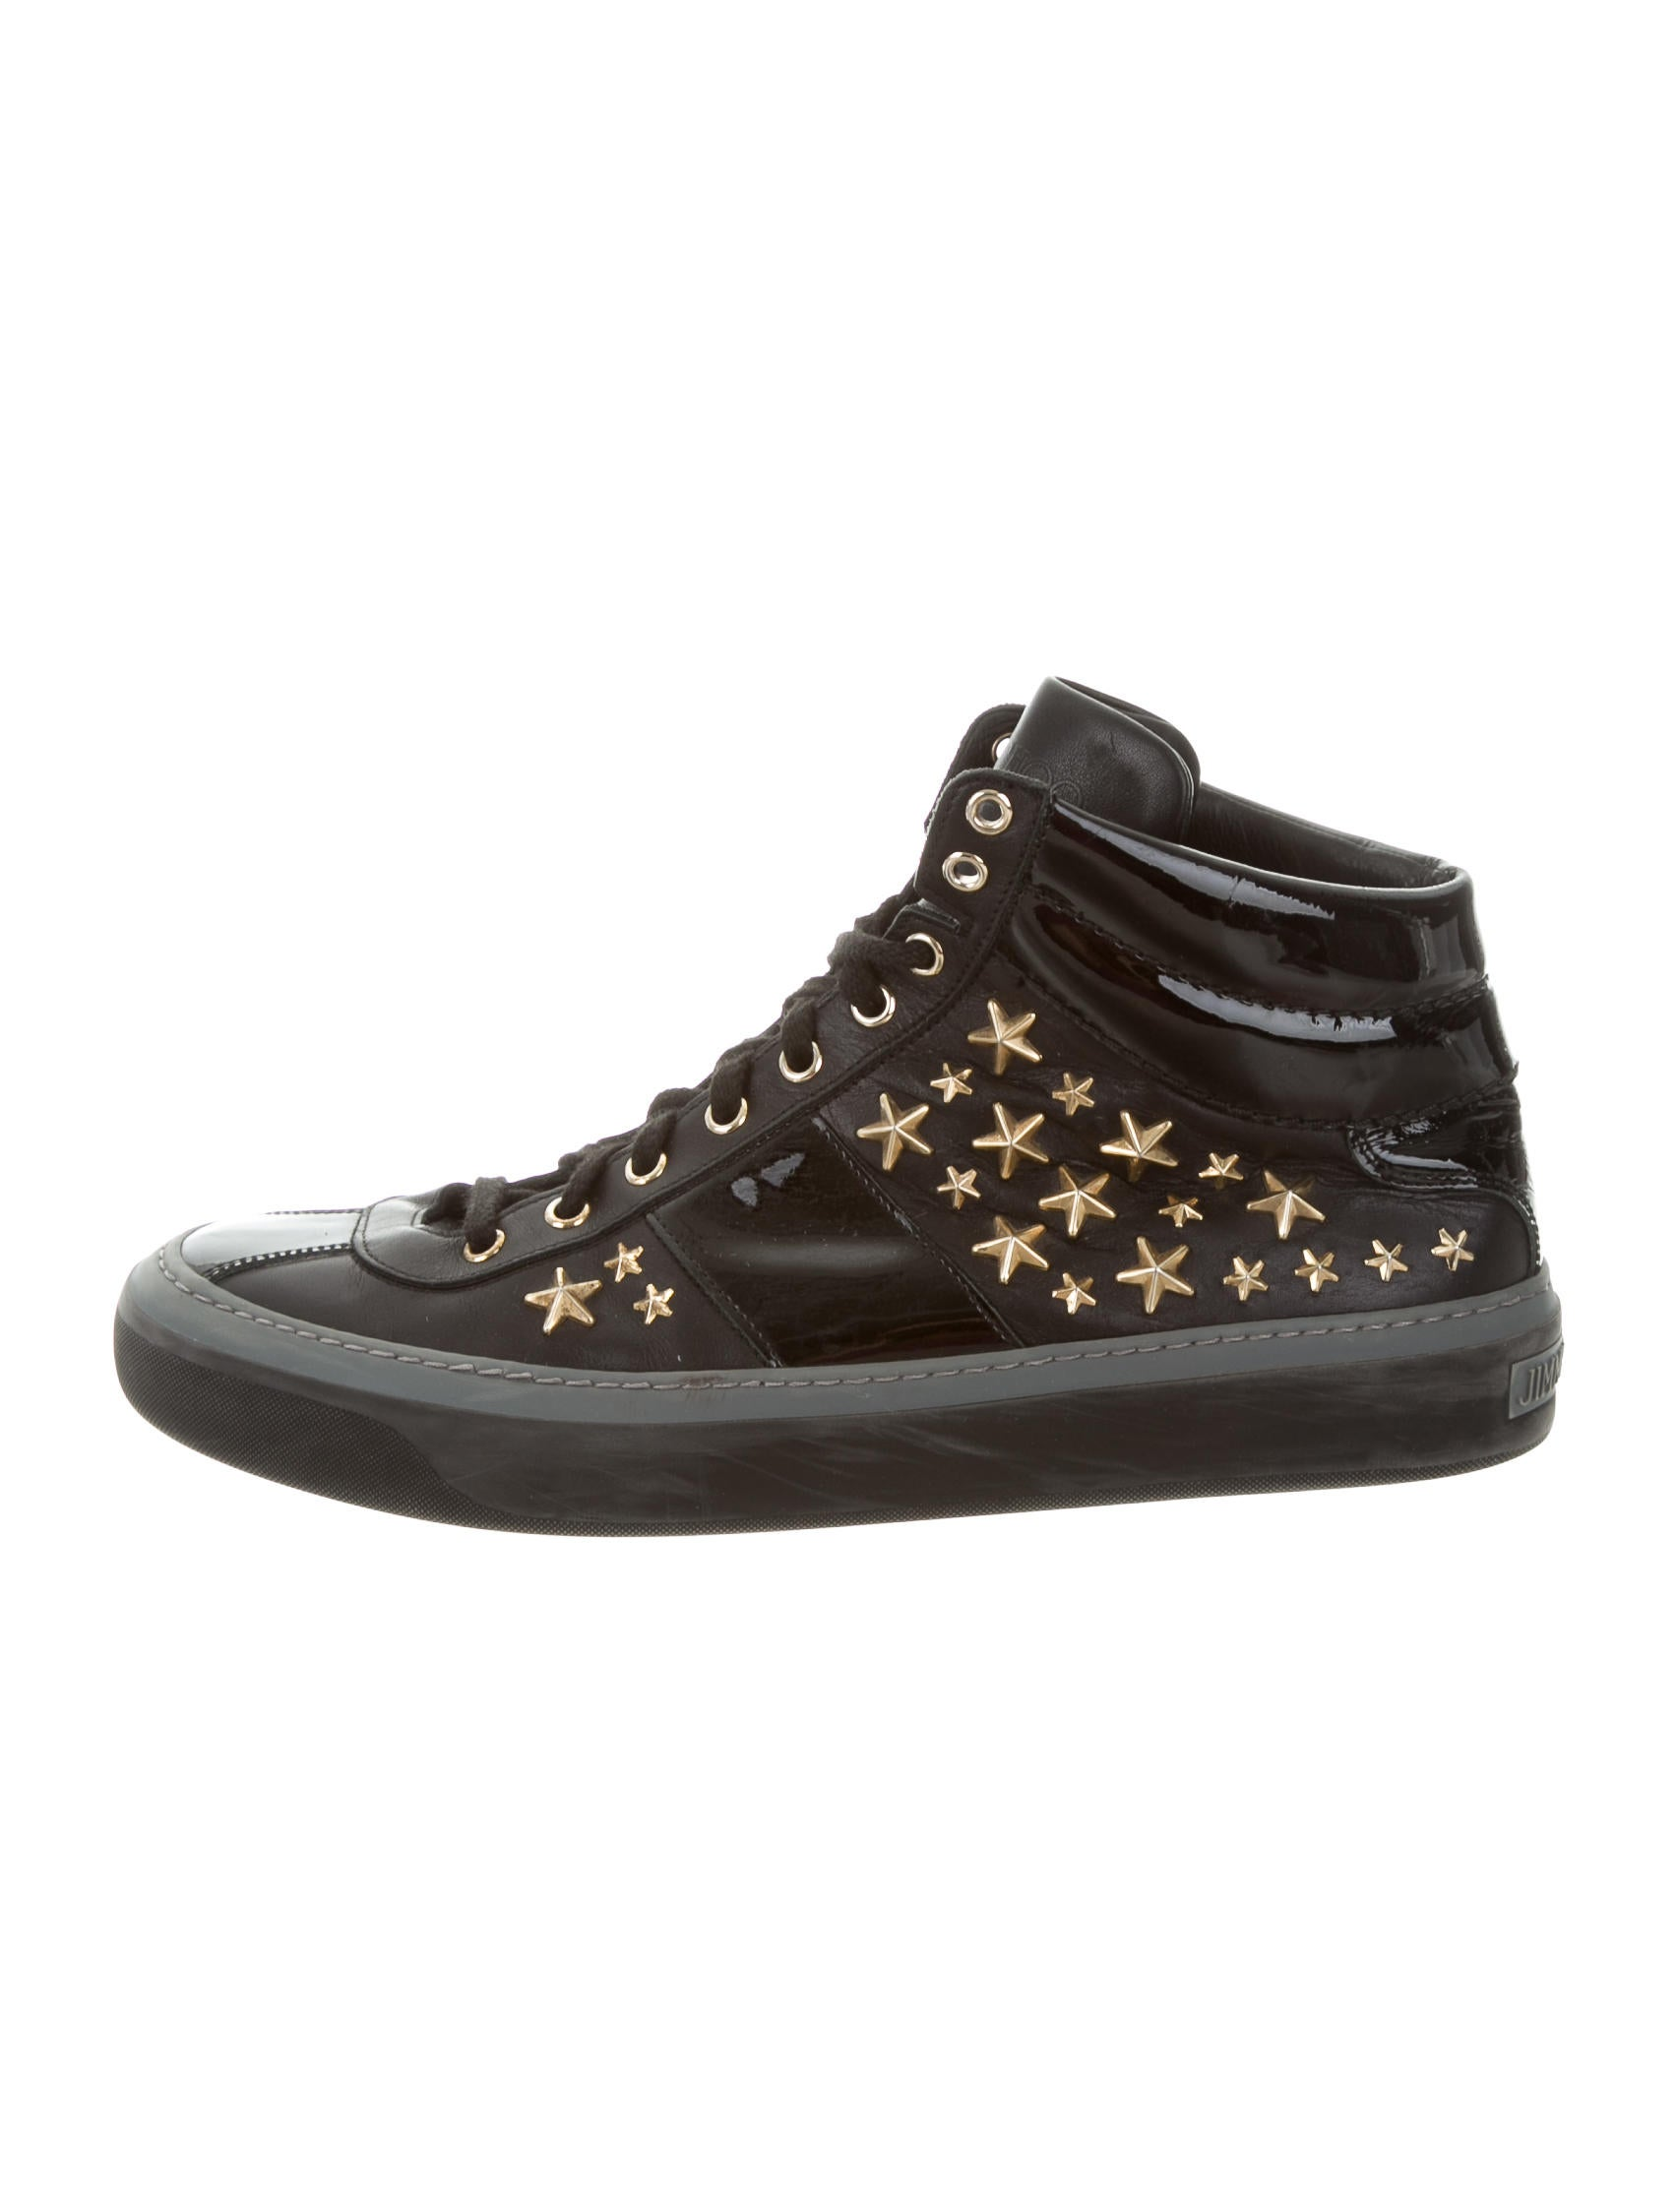 jimmy choo embellished leather sneakers shoes jim65731 the realreal. Black Bedroom Furniture Sets. Home Design Ideas